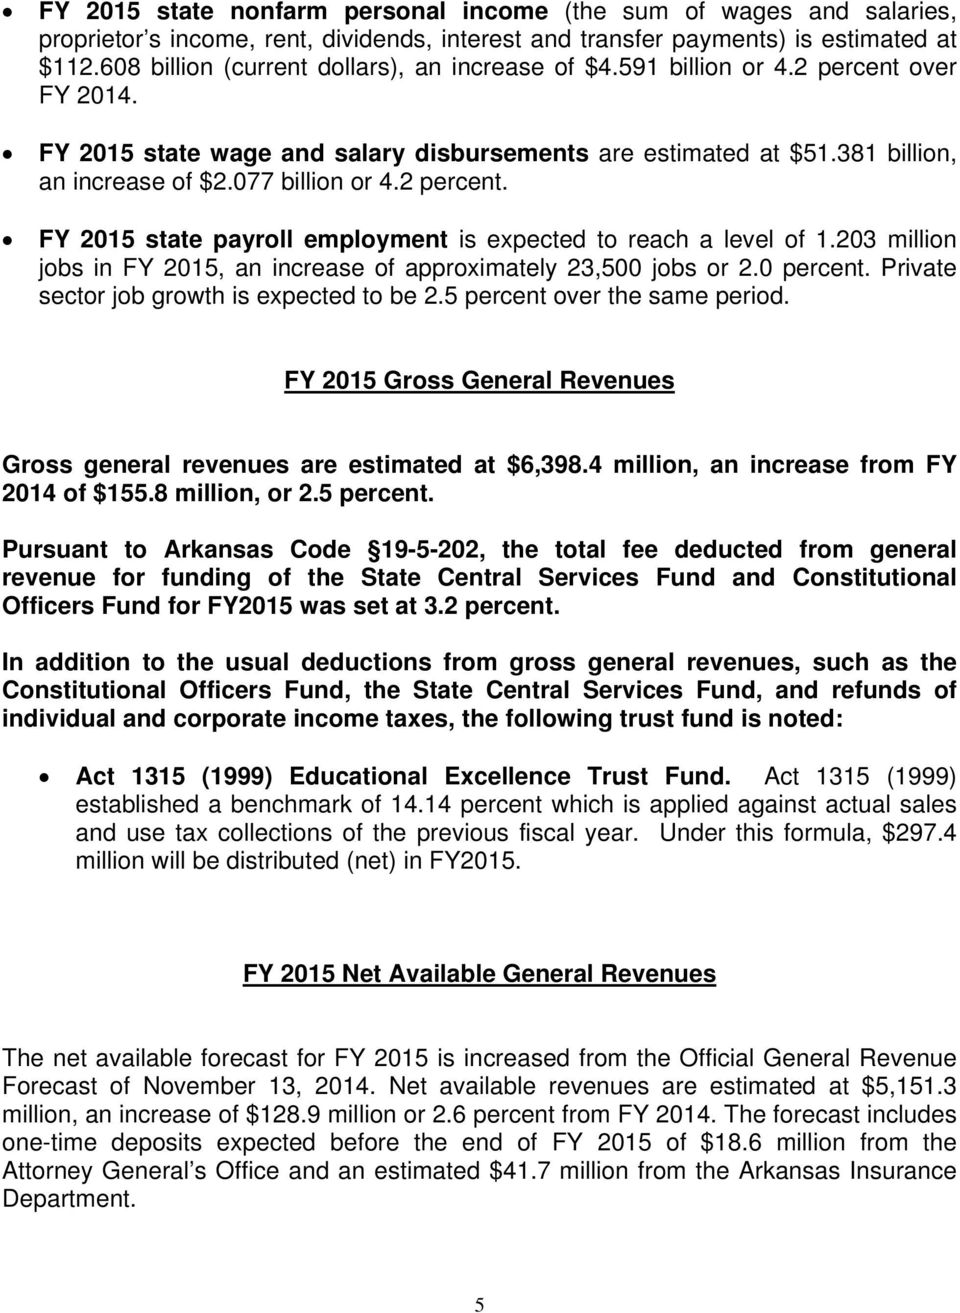 077 billion or 4.2 percent. FY 2015 state payroll employment is expected to reach a level of 1.203 million jobs in FY 2015, an increase of approximately 23,500 jobs or 2.0 percent.